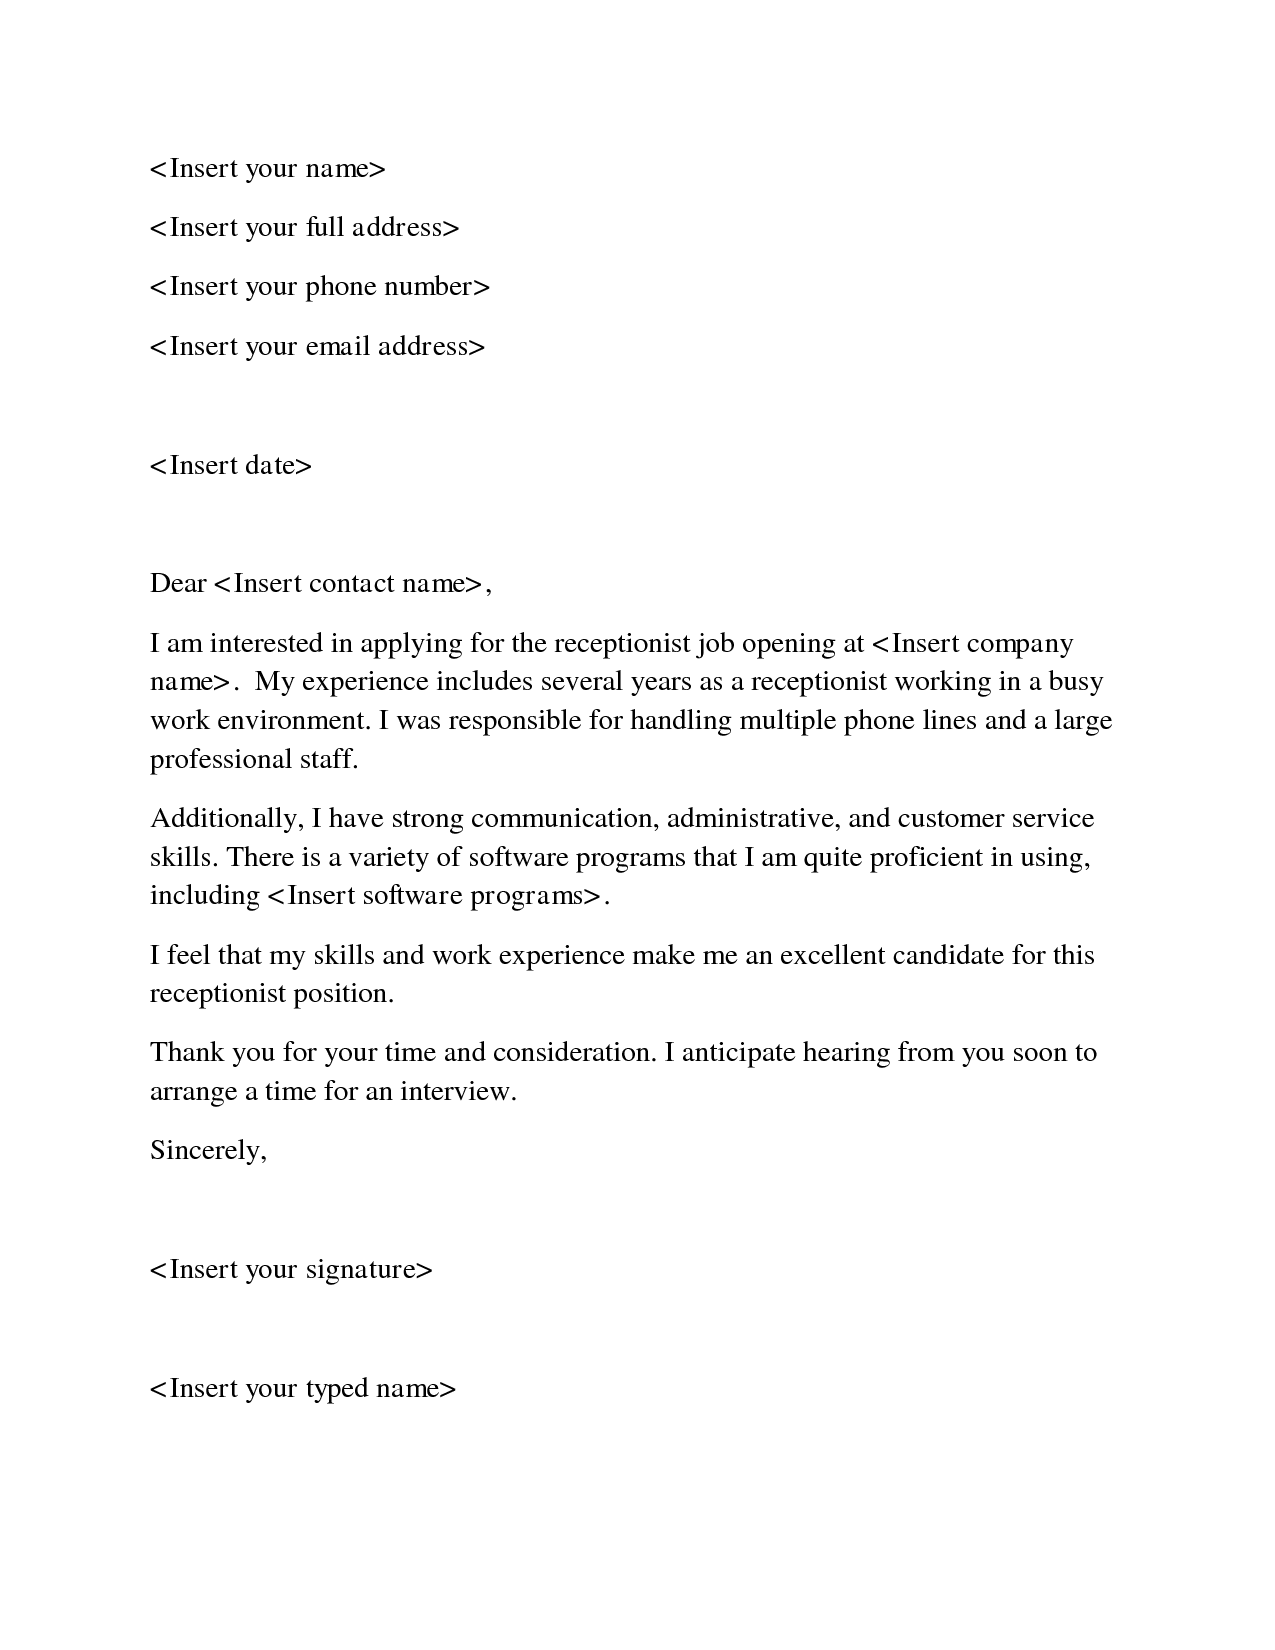 Sample essay letter cover letter for an essay application letter cover letter help receptionist resume top essay writingcover cover letter help receptionist resume top essay writingcover altavistaventures Gallery